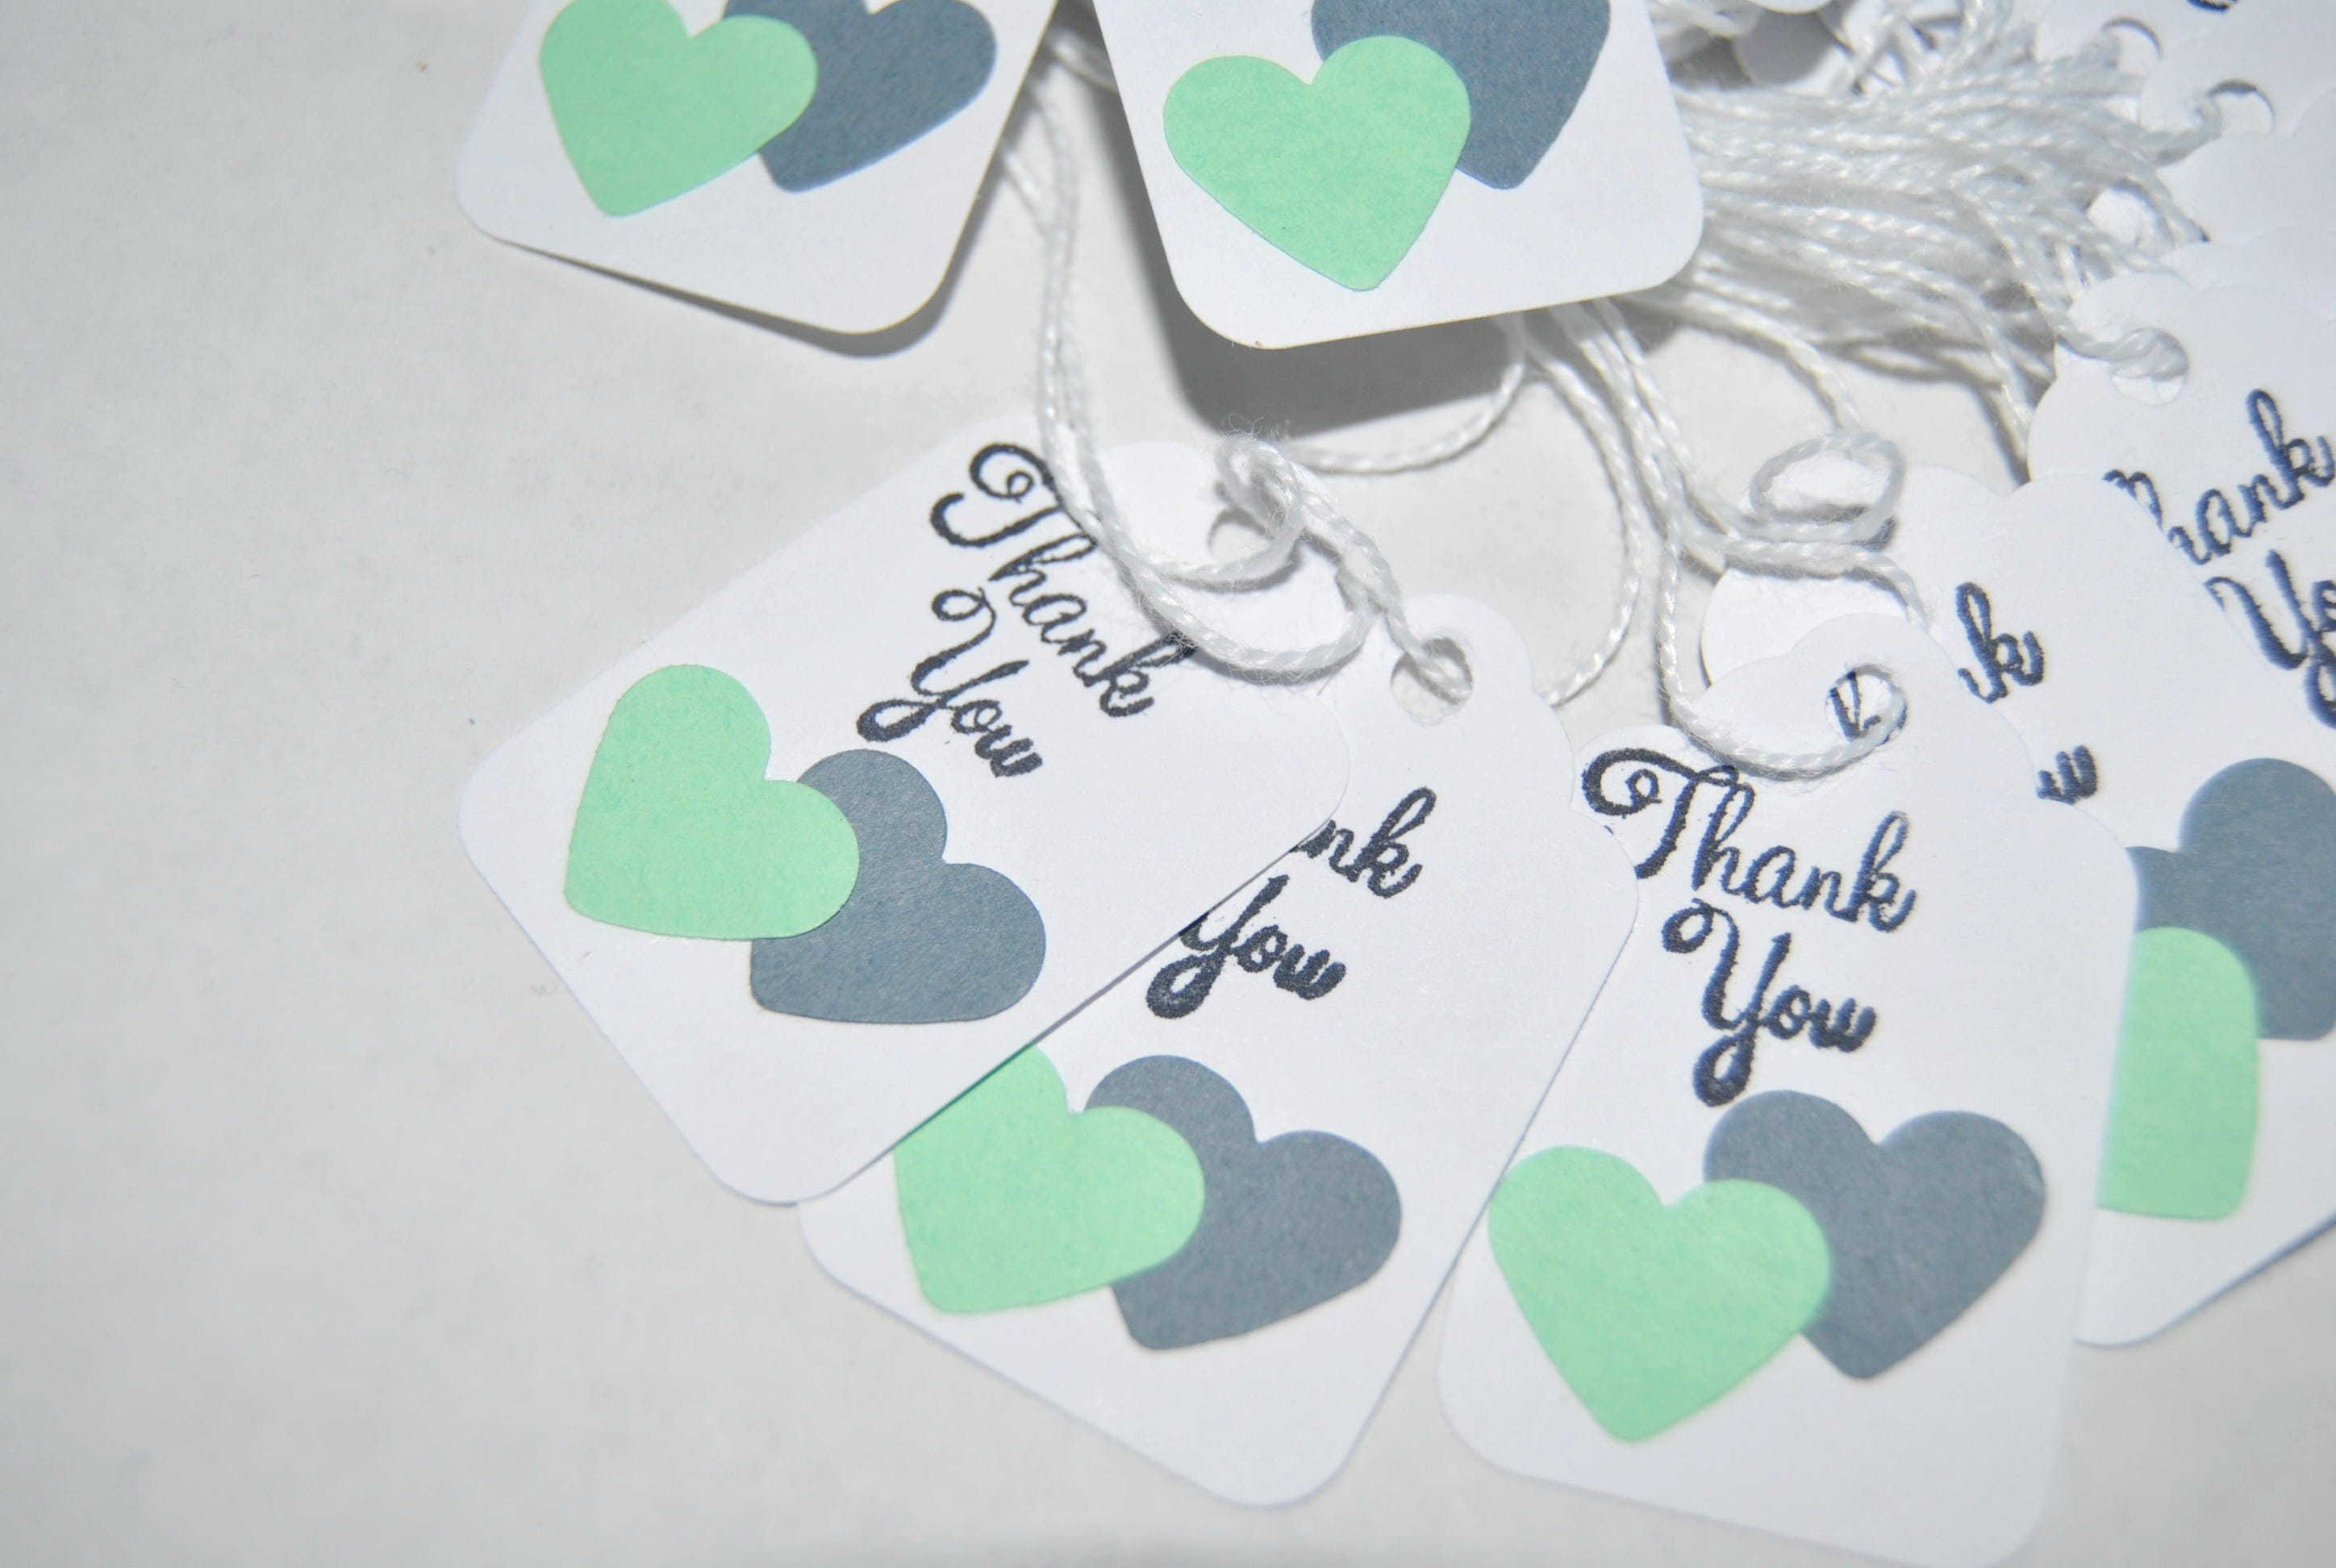 Wedding Favor Tags Two Hearts Become One Thank You Tags